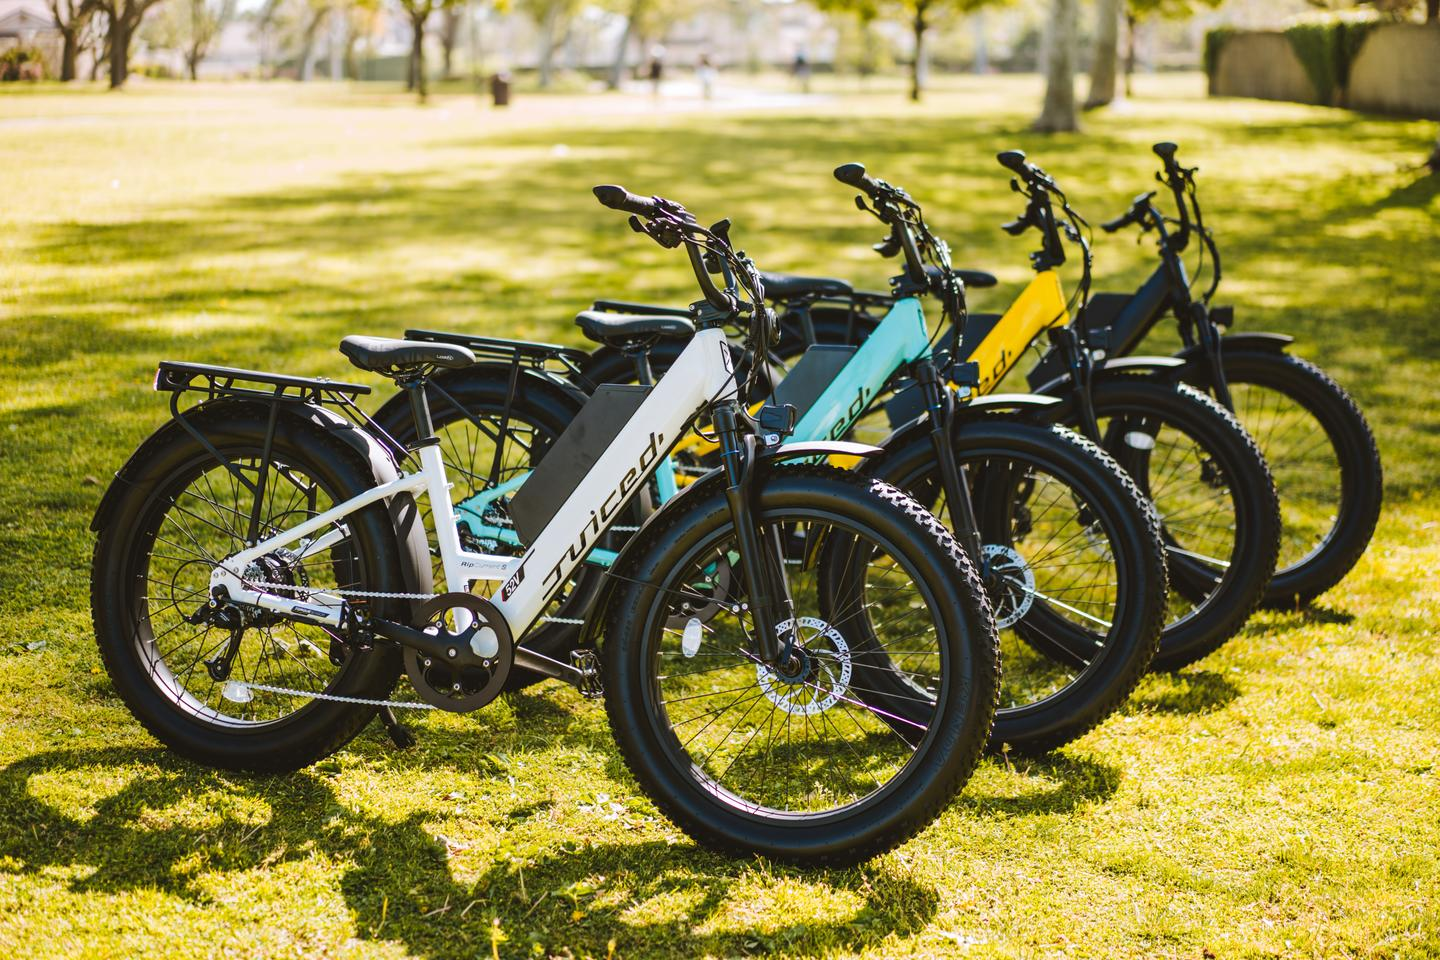 The RipCurrent S Step-Through ebike has been launched to appeal to a broader range of riders